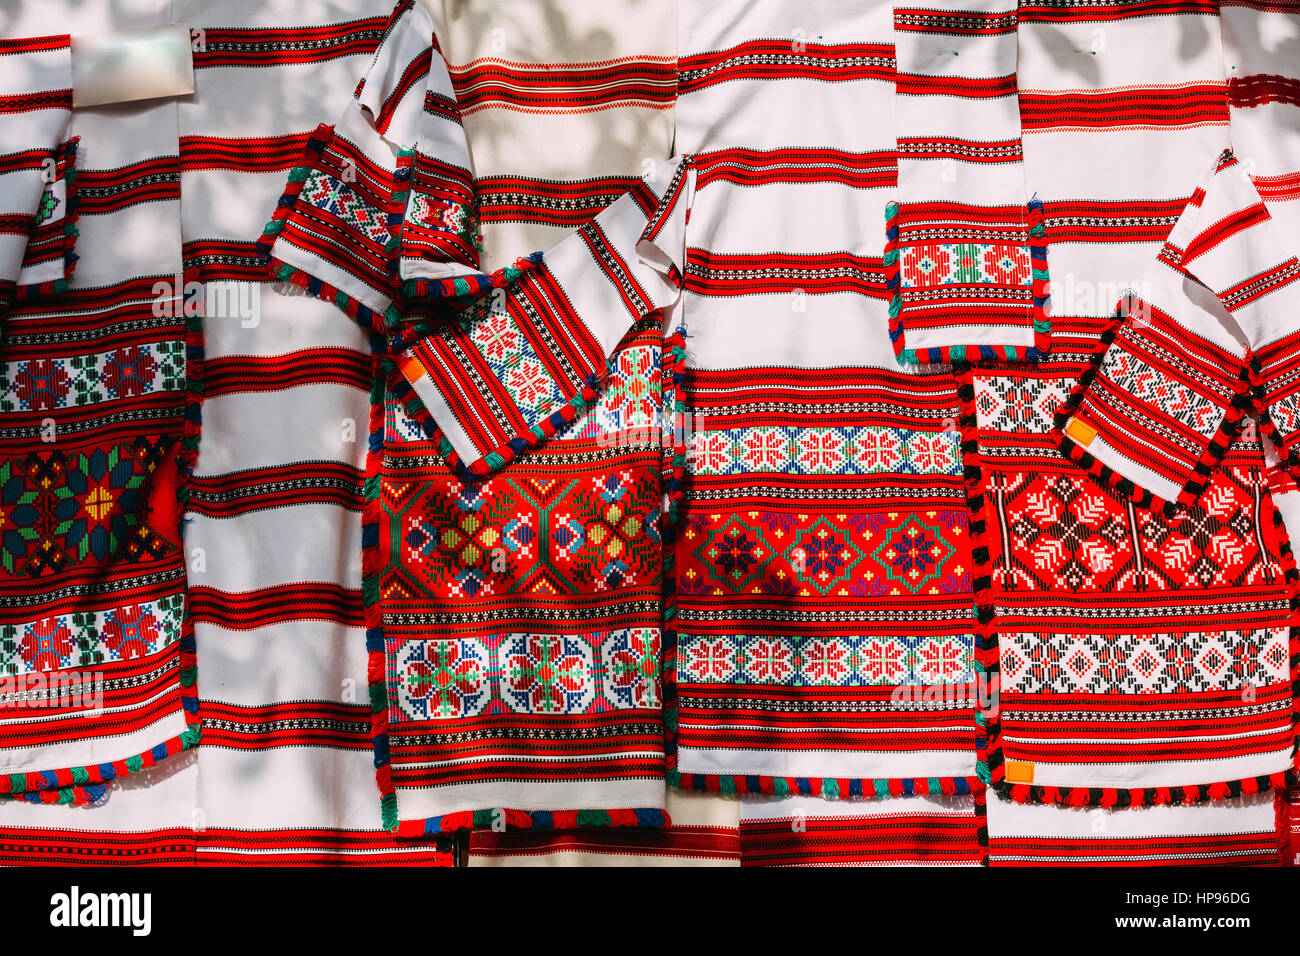 Belorussian ethnic national folks ornament on clothes. Slavic Traditional Pattern Ornament Embroidery. Culture of - Stock Image